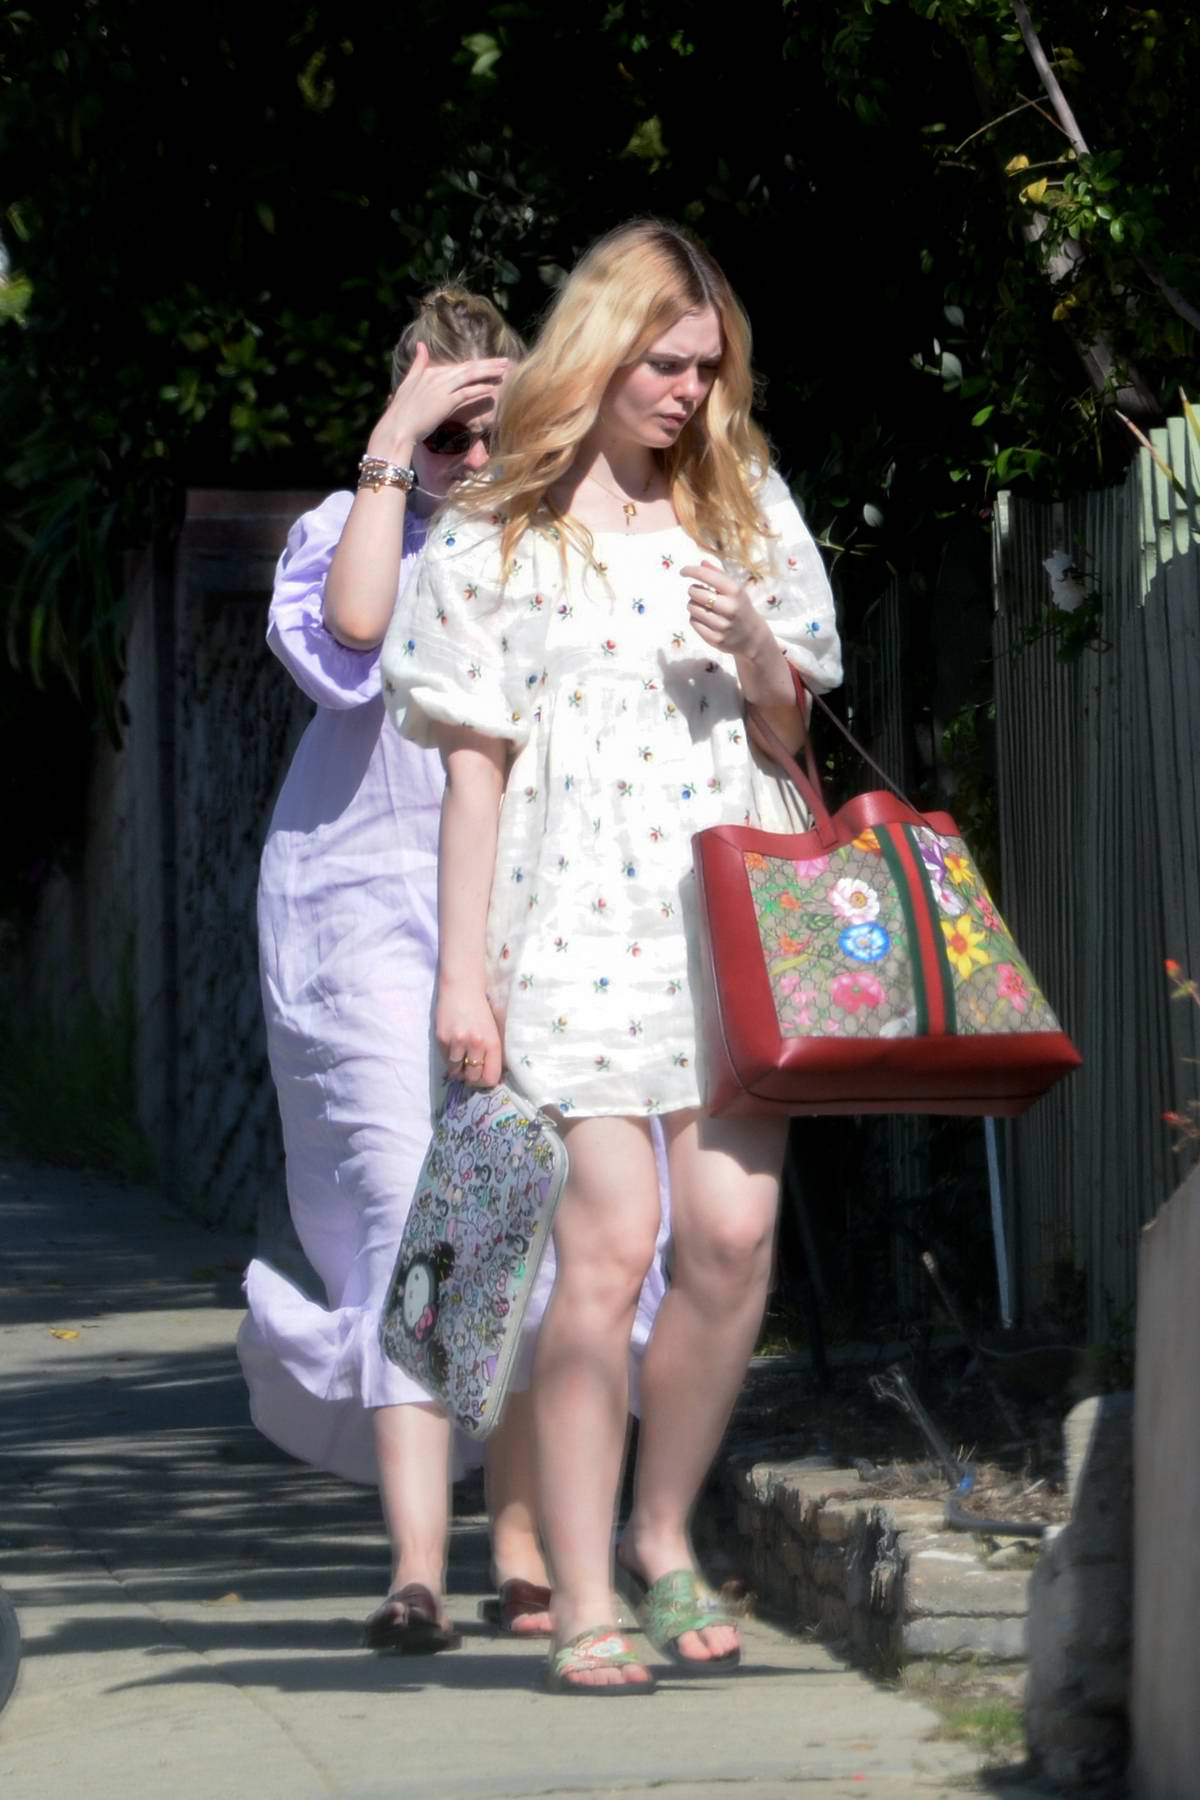 Elle Fanning and Dakota Fanning step out together in Los Angeles